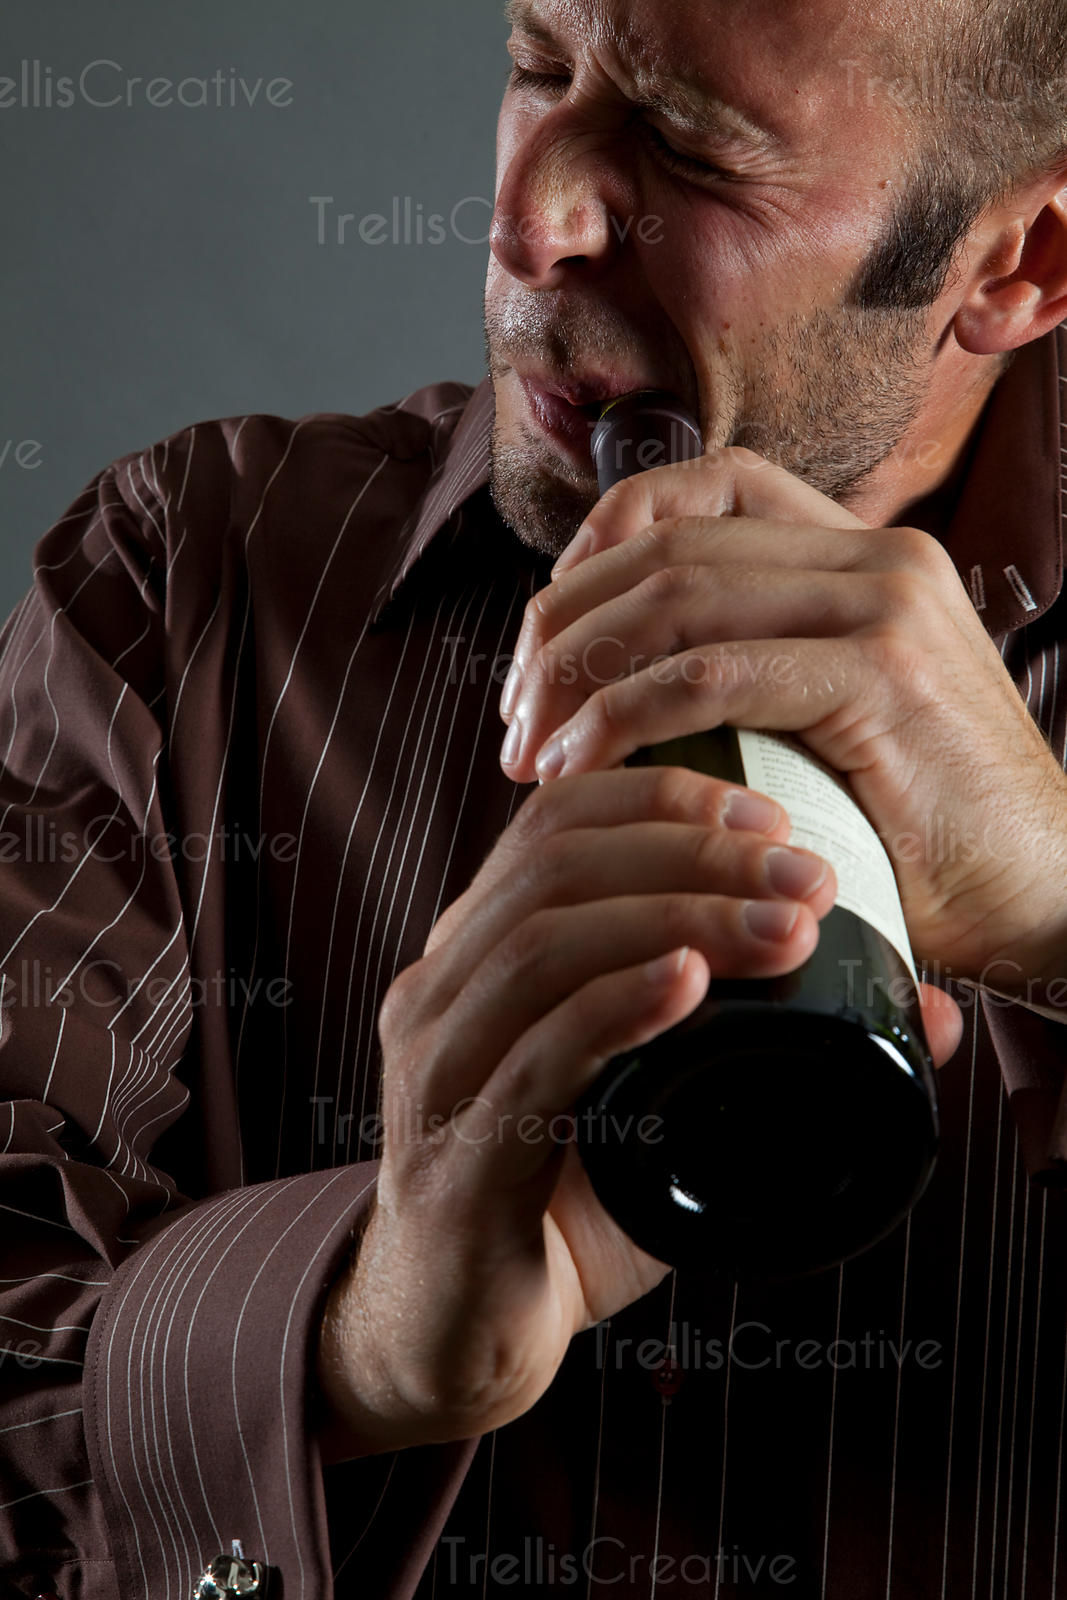 Man pulling cork from wine bottle with his teeth